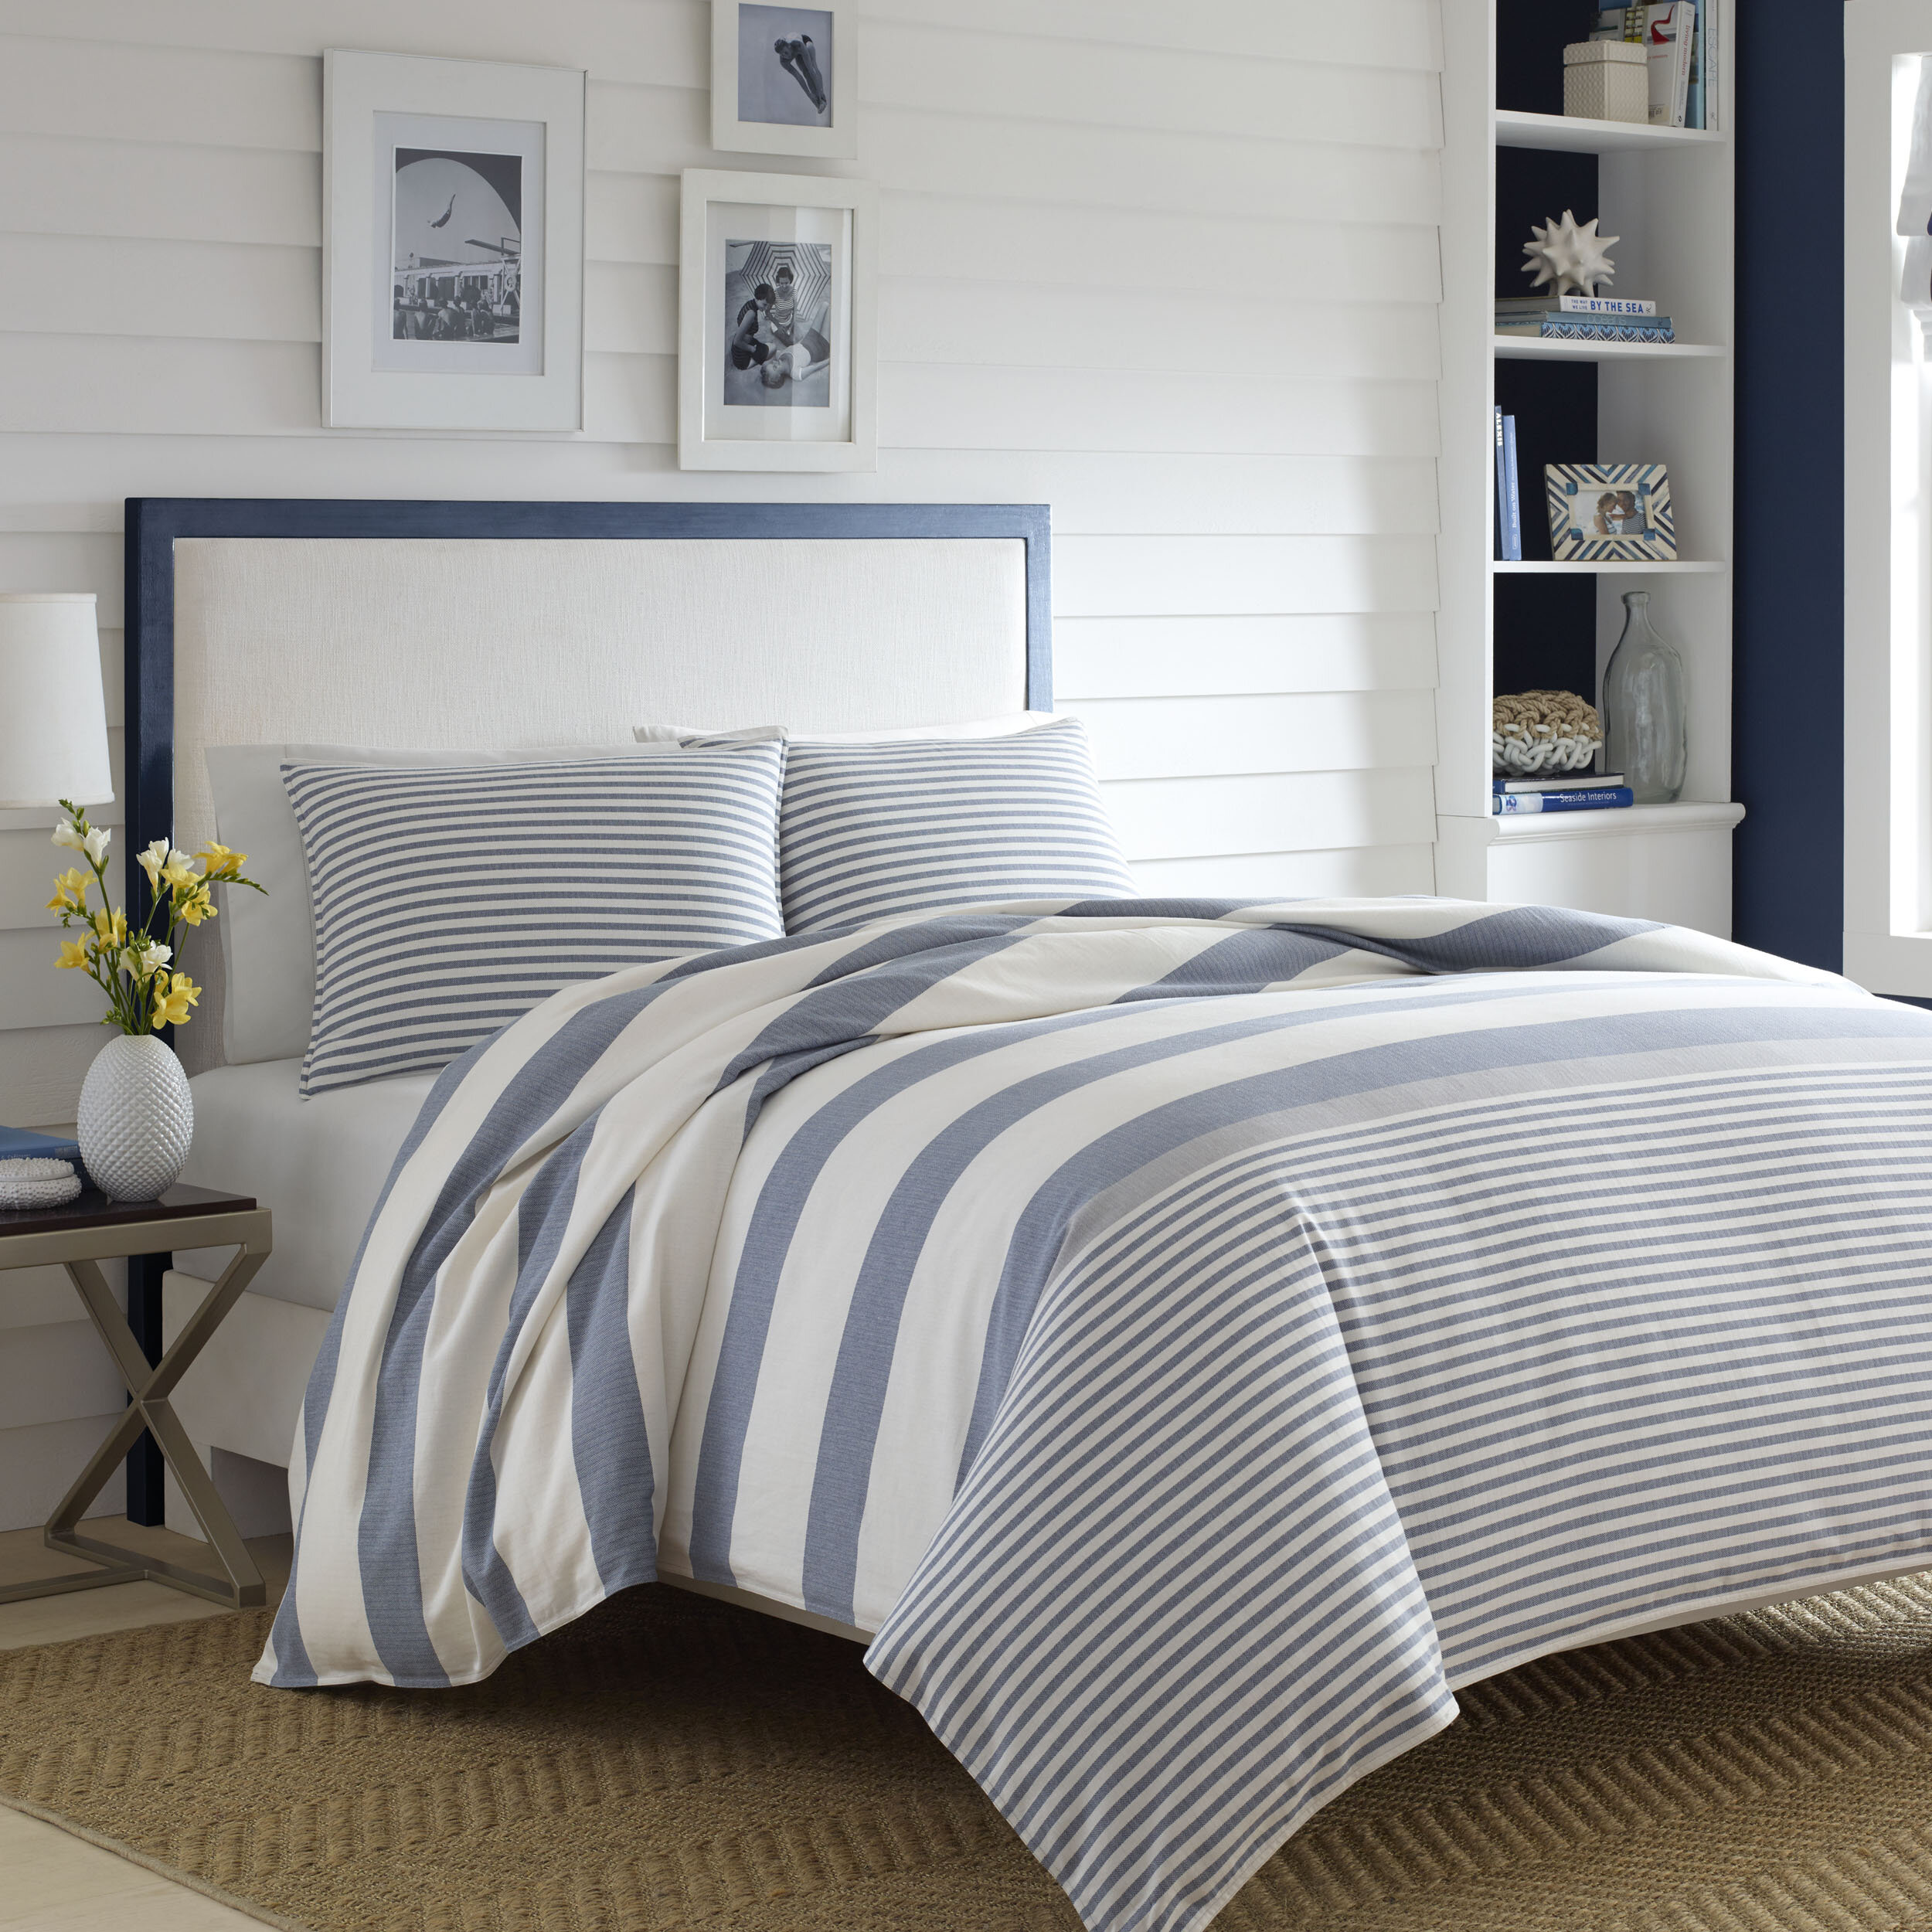 covers stripe and color a soft room slim comforter grey with palette this nautical duvet pin set